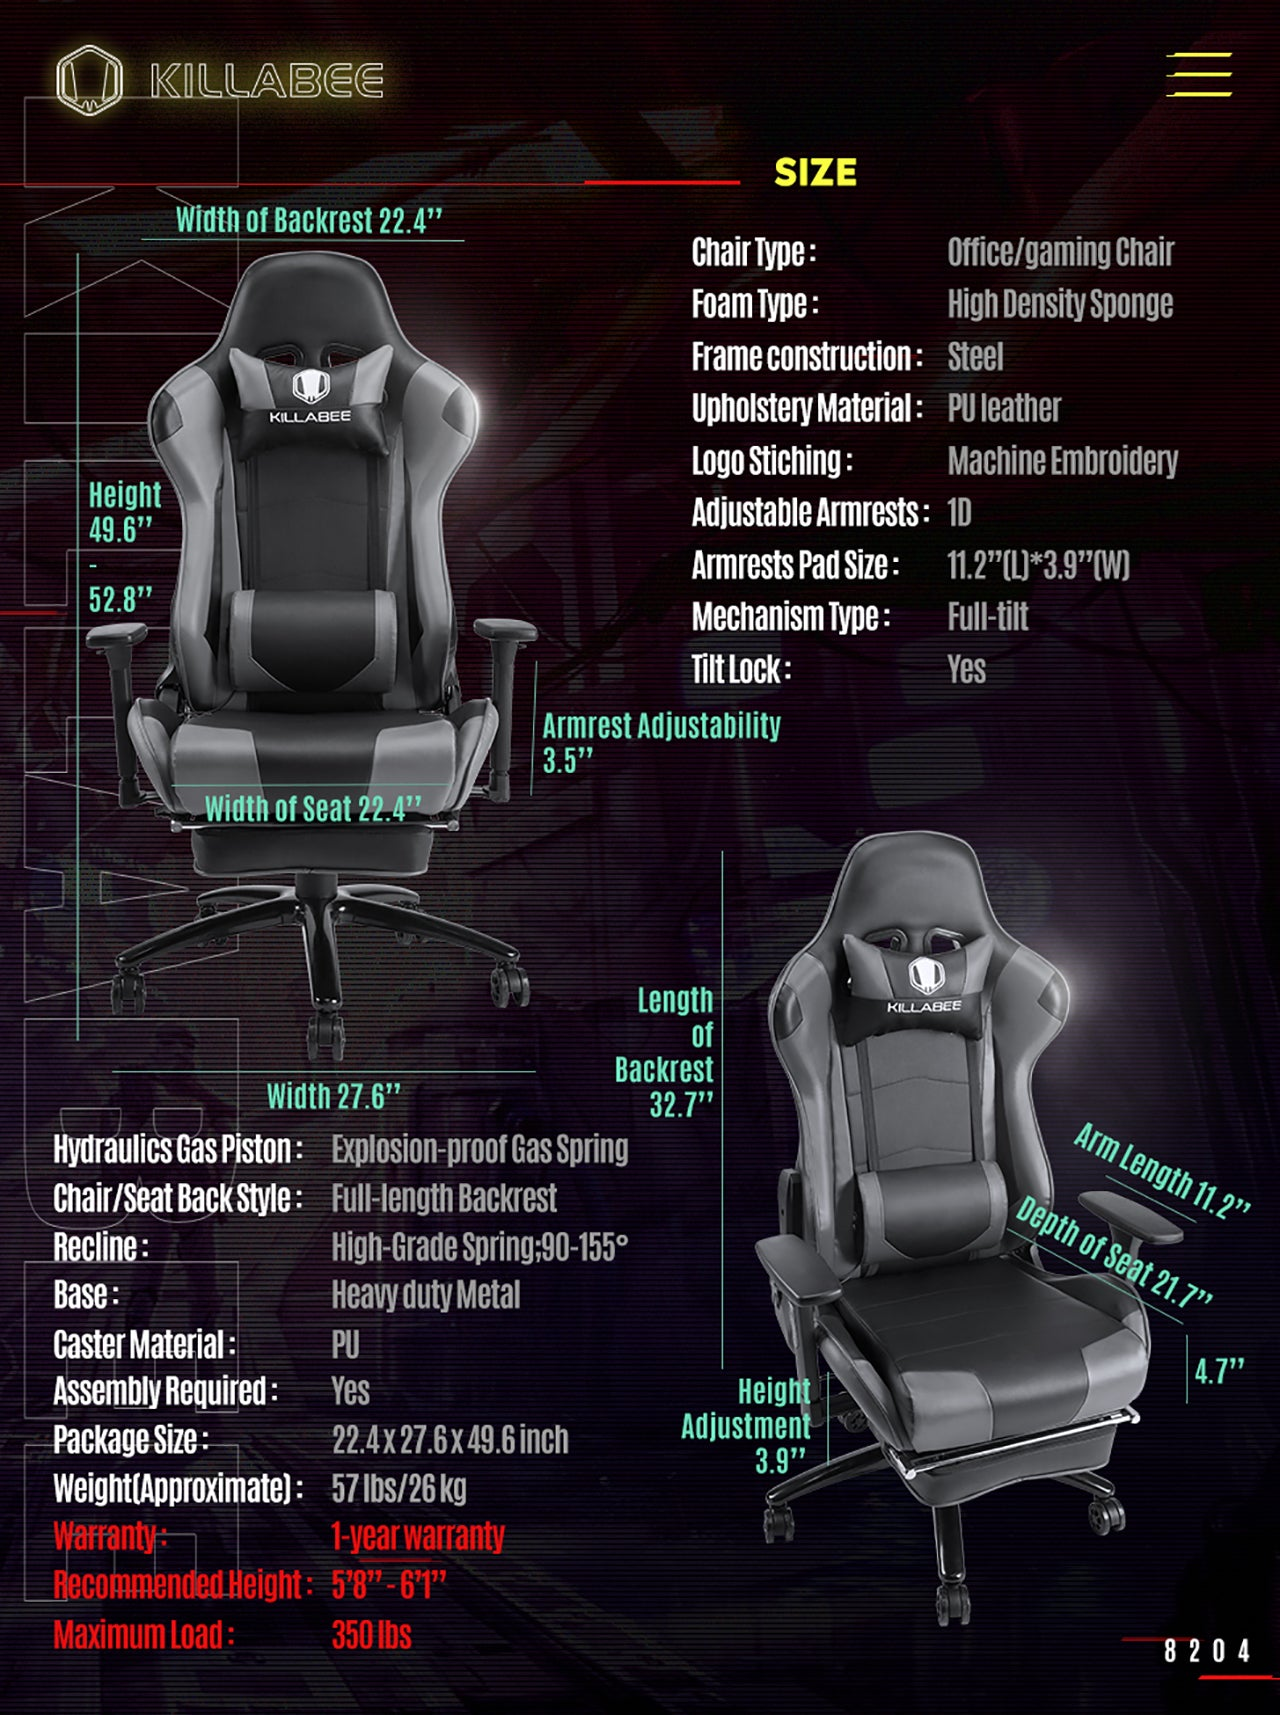 KILLABEE RACING GAMING CHAIR 8204 GTAY SPECIFICATION